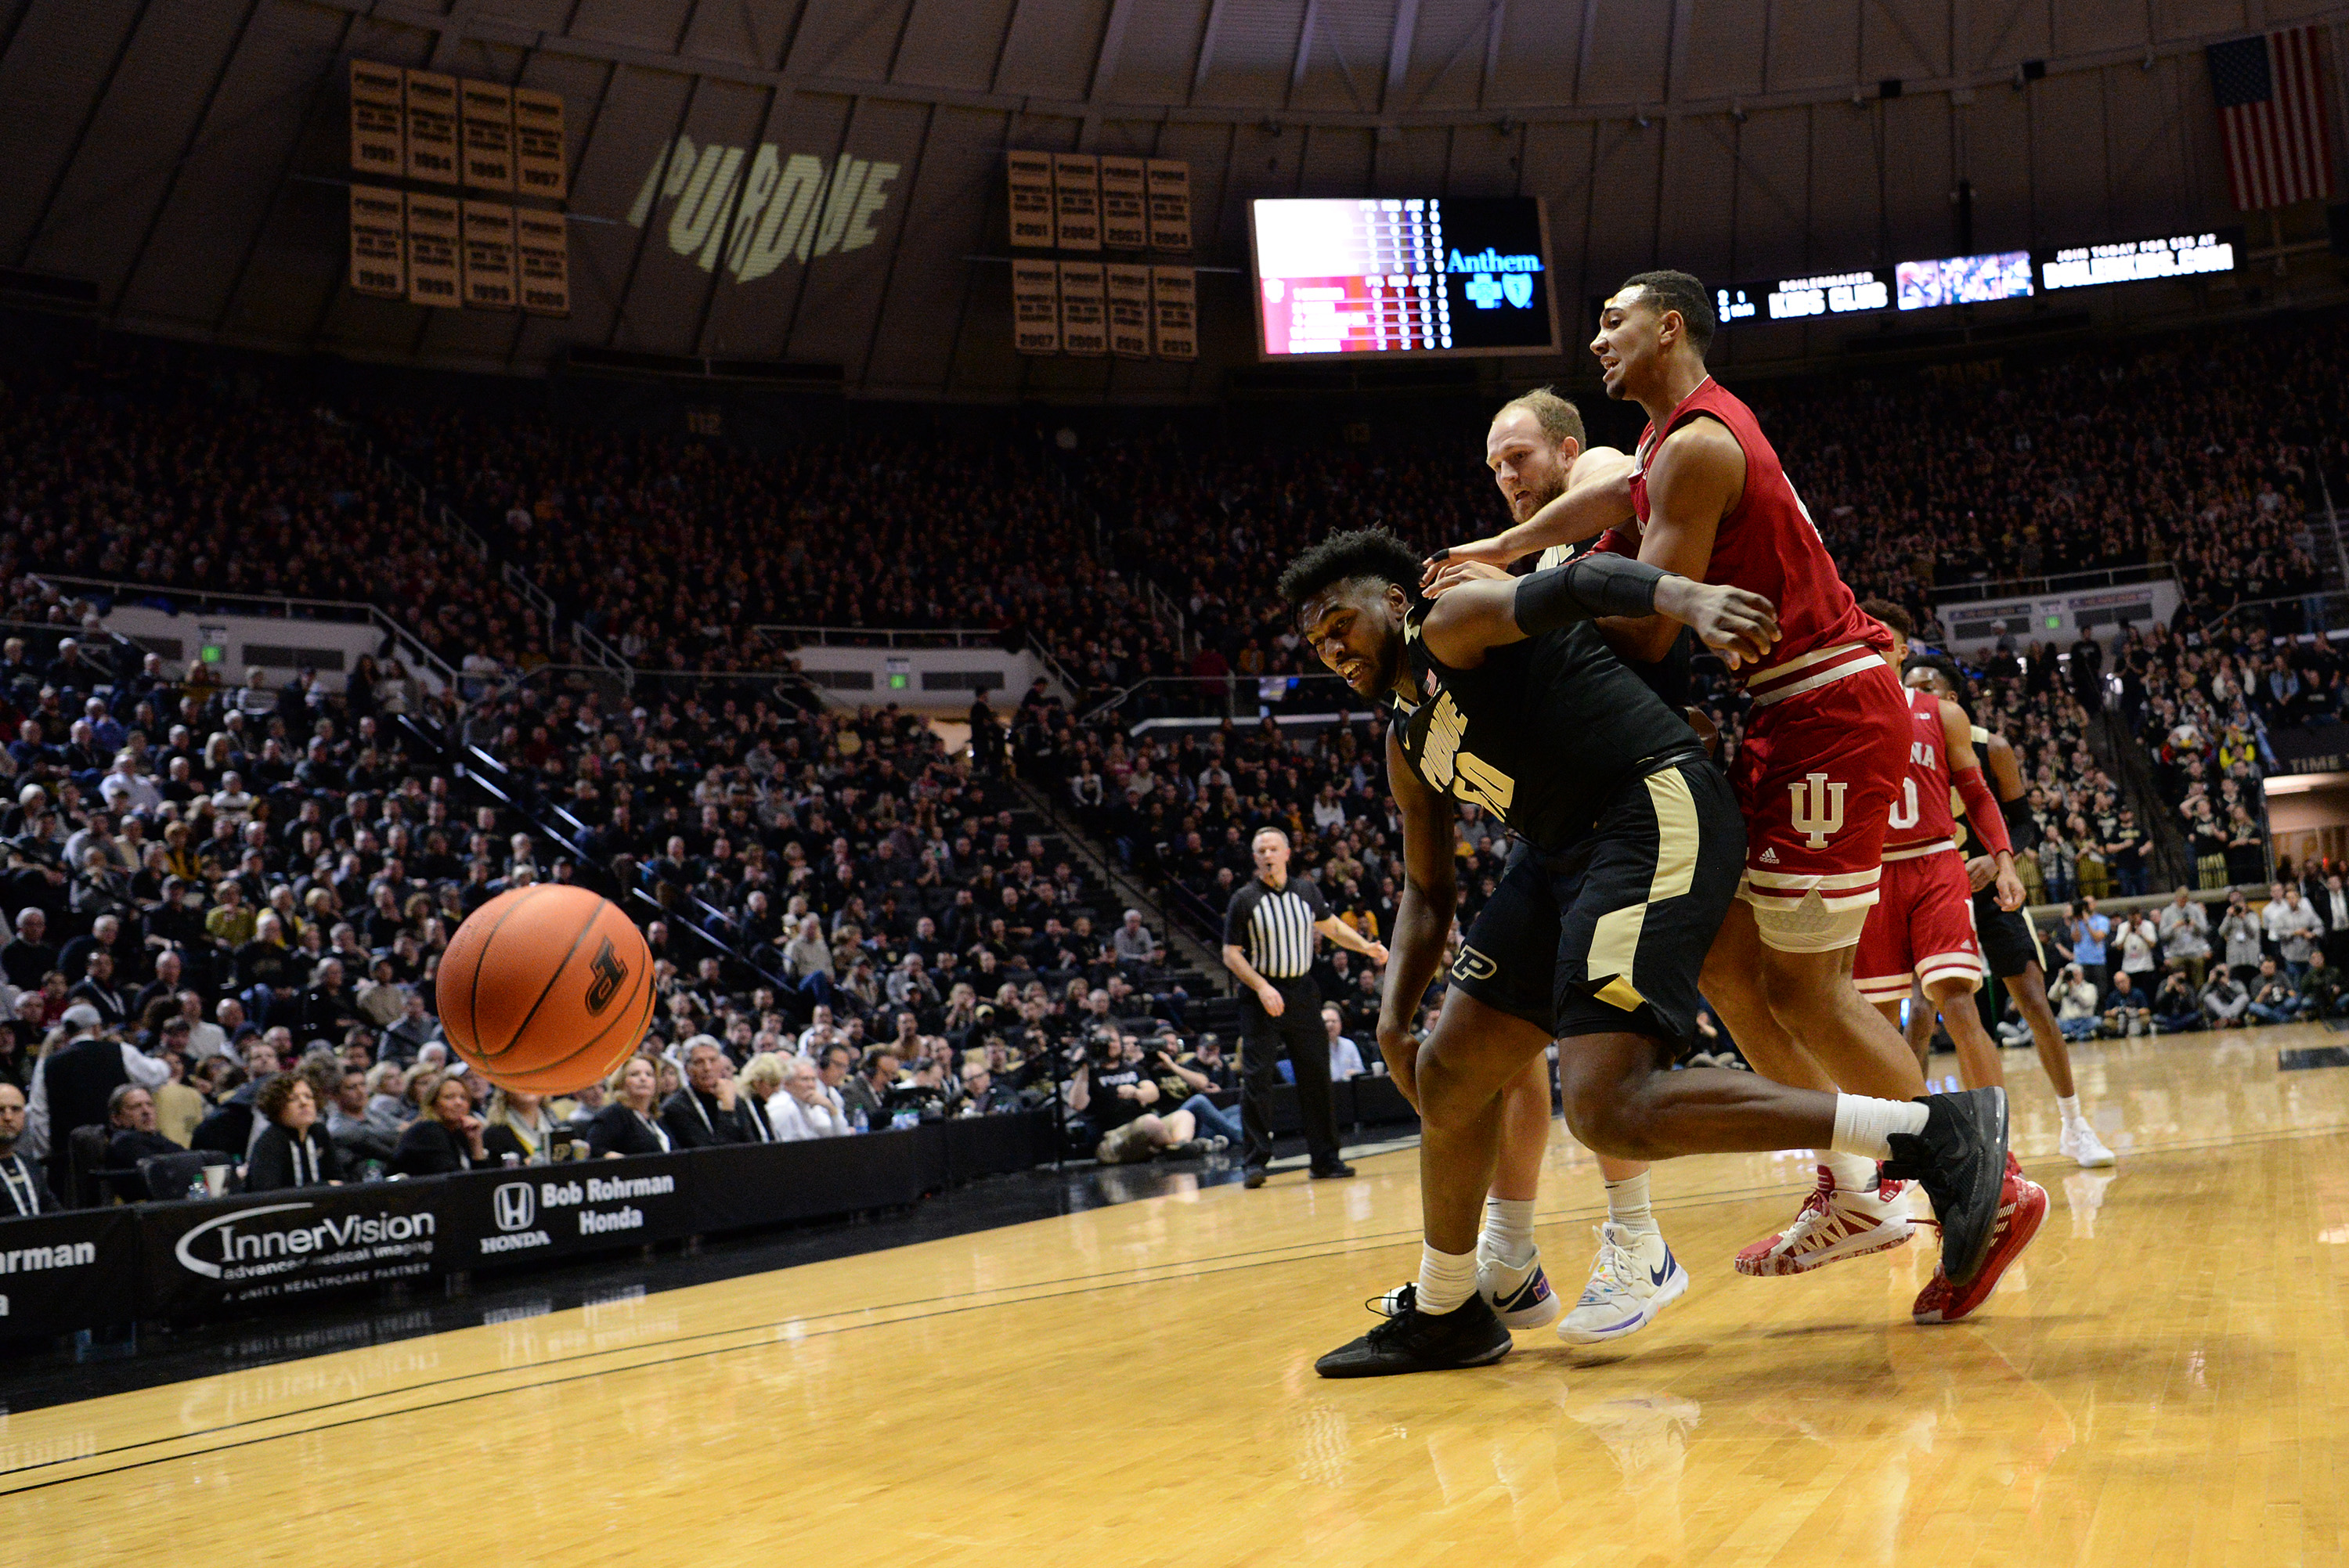 COLLEGE BASKETBALL: FEB 27 Indiana at Purdue